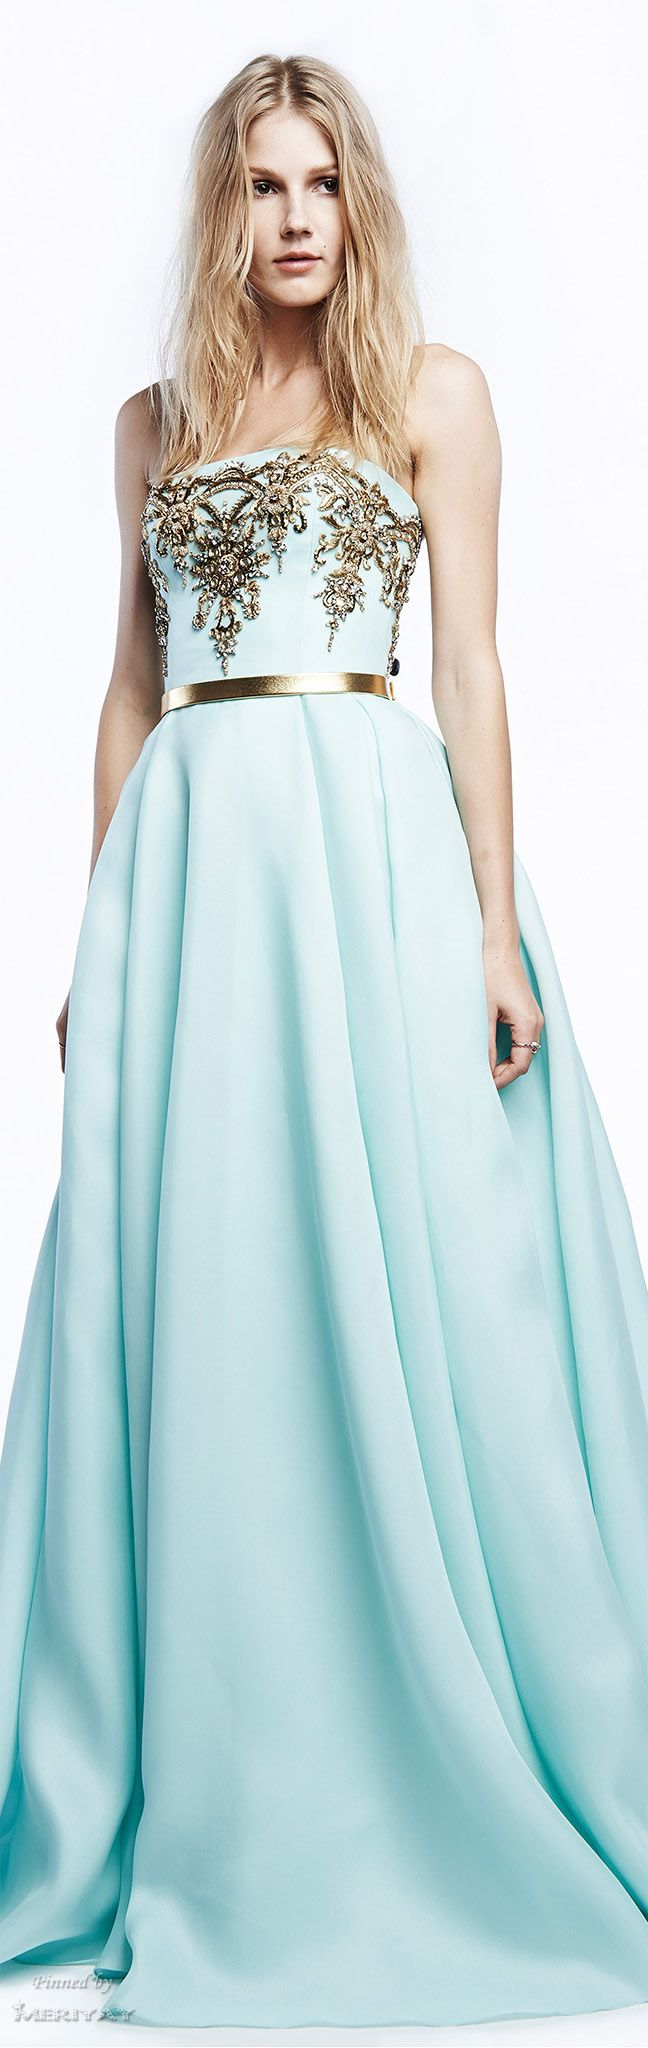 Reem Acra Resort 2015. AKA the prettiest dress I have ever seen in my life!!!!!!!!!!!!!!!!!